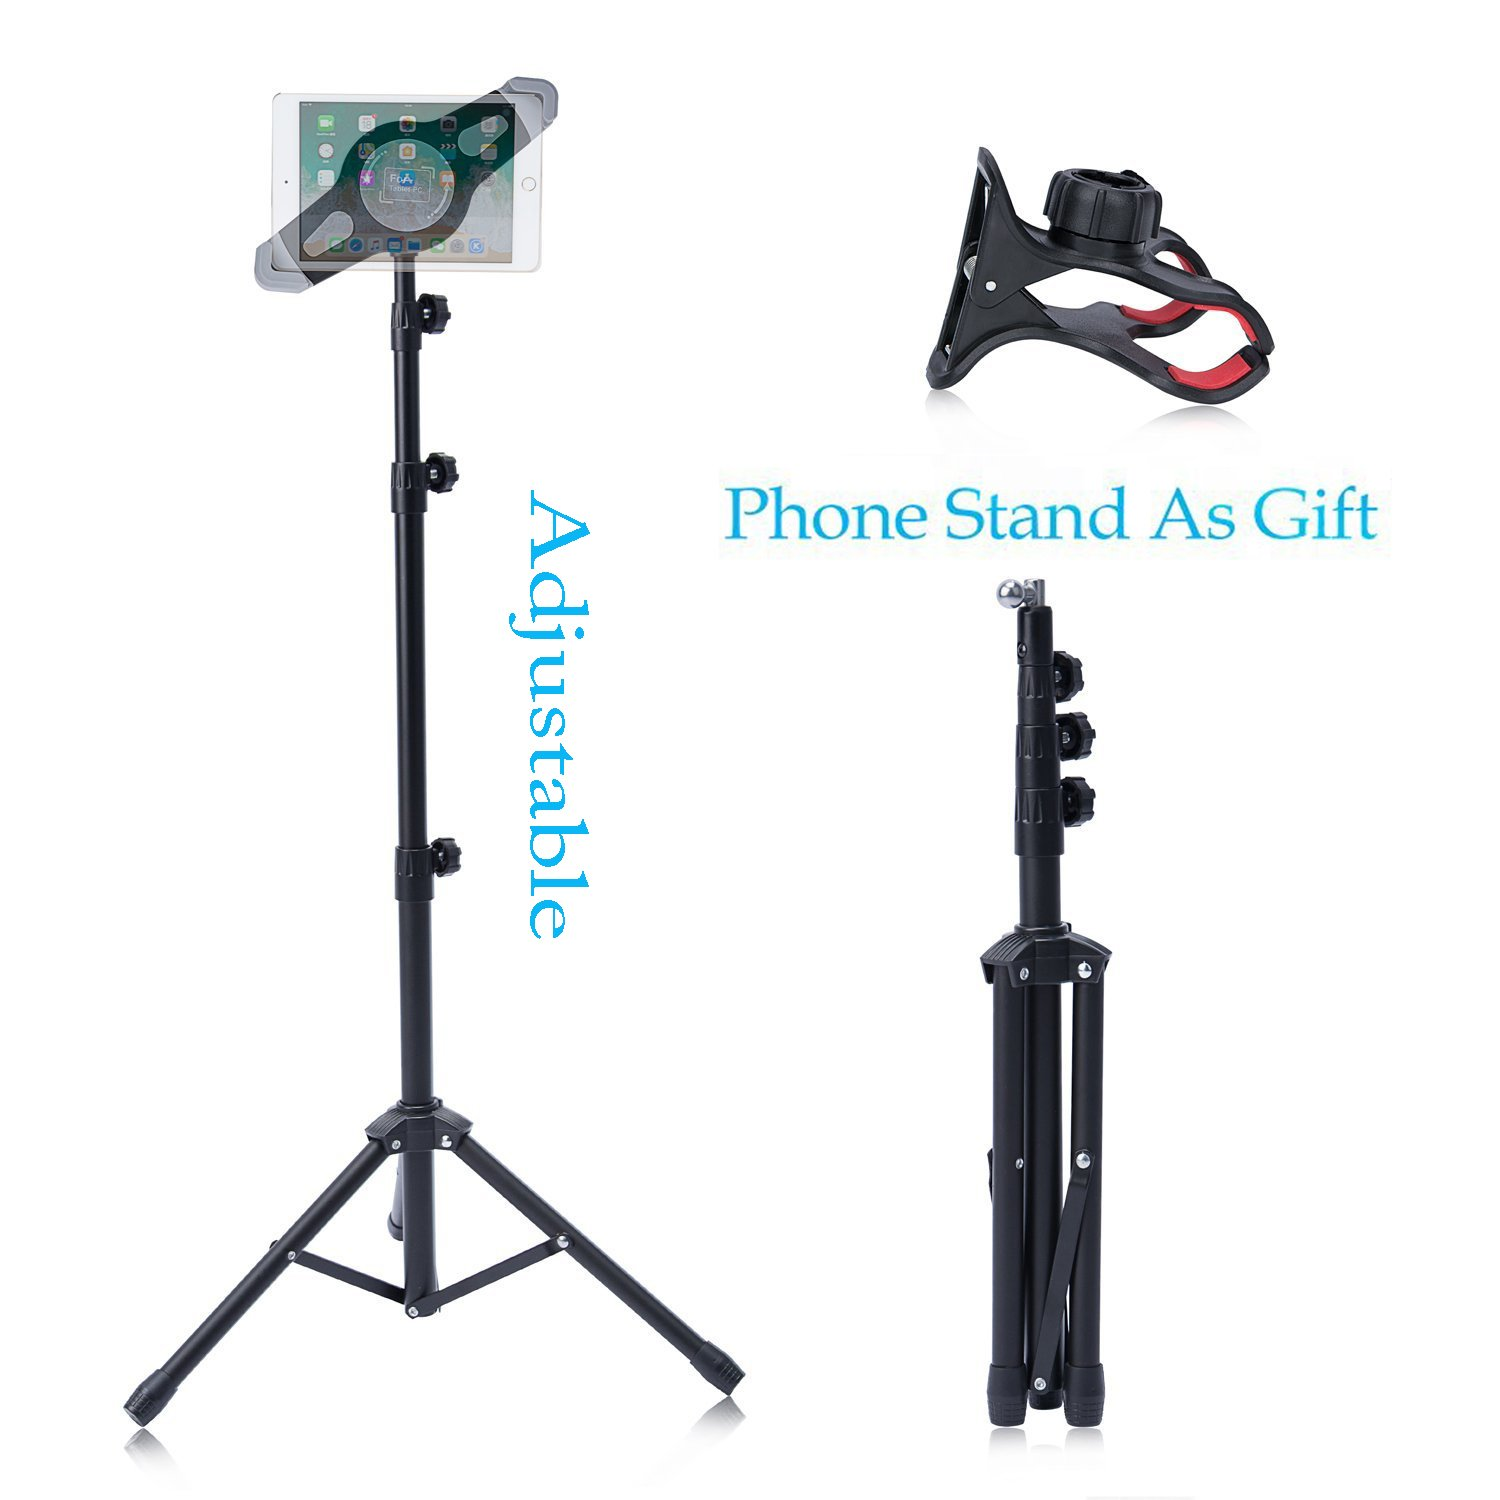 T-Sign Reinforced IPad Tripod Stand Mount - Foldable Floor Tablet Holder, Height Adjustable 360 Rotating Stand for iPad Mini/Air and More 7'' to 12'' Tablets, Carrying Case and Phone Holder As Gifts by T-SIGN (Image #1)